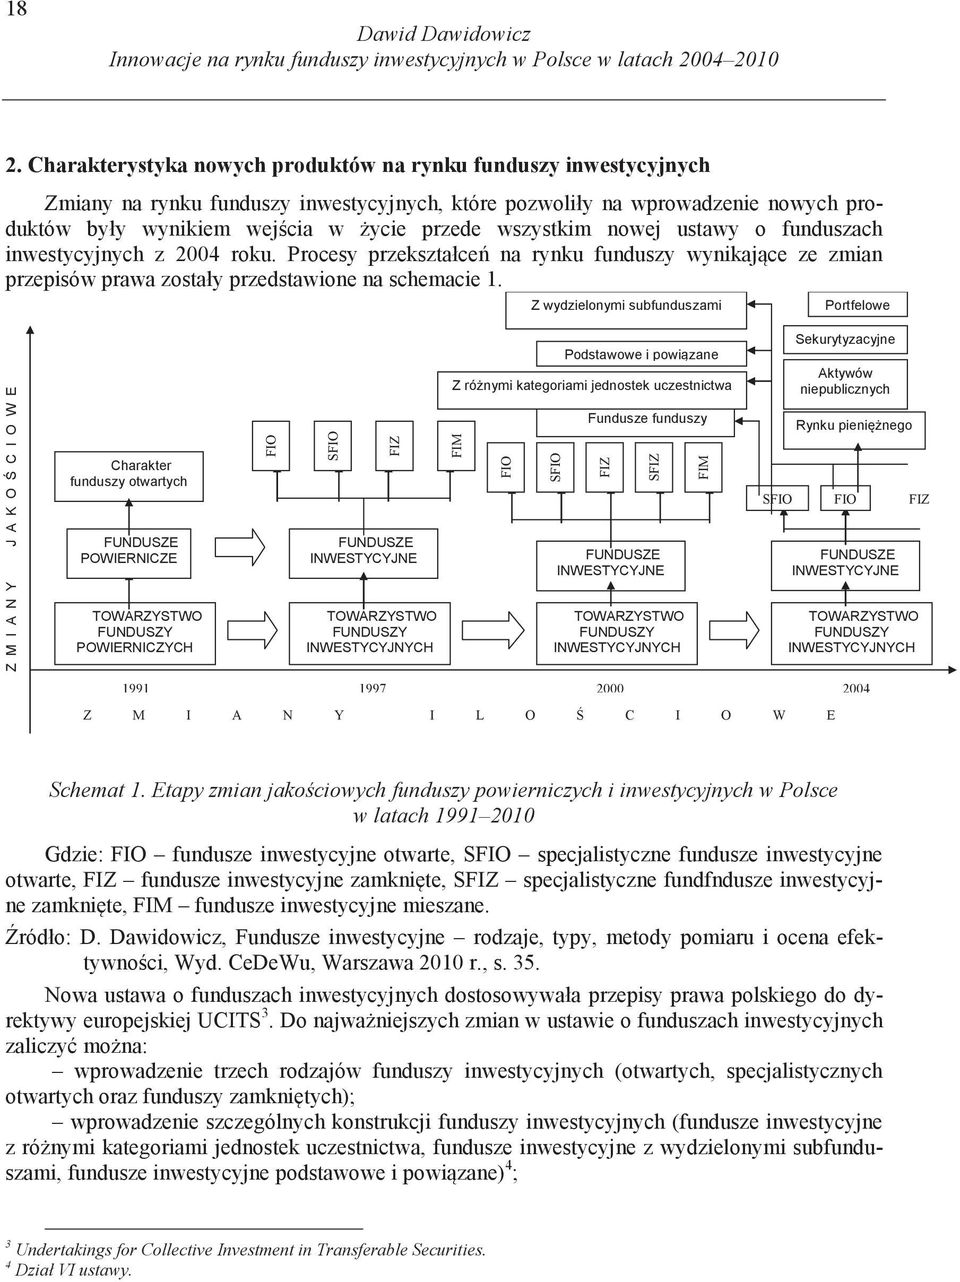 Etapy zmian jakociowych funduszy powierniczych i inwestycyjnych w Polsce w latach 1991 2010 3 Undertakings for Collective Investment in Transferable Securities. 4 Dział VI ustawy.